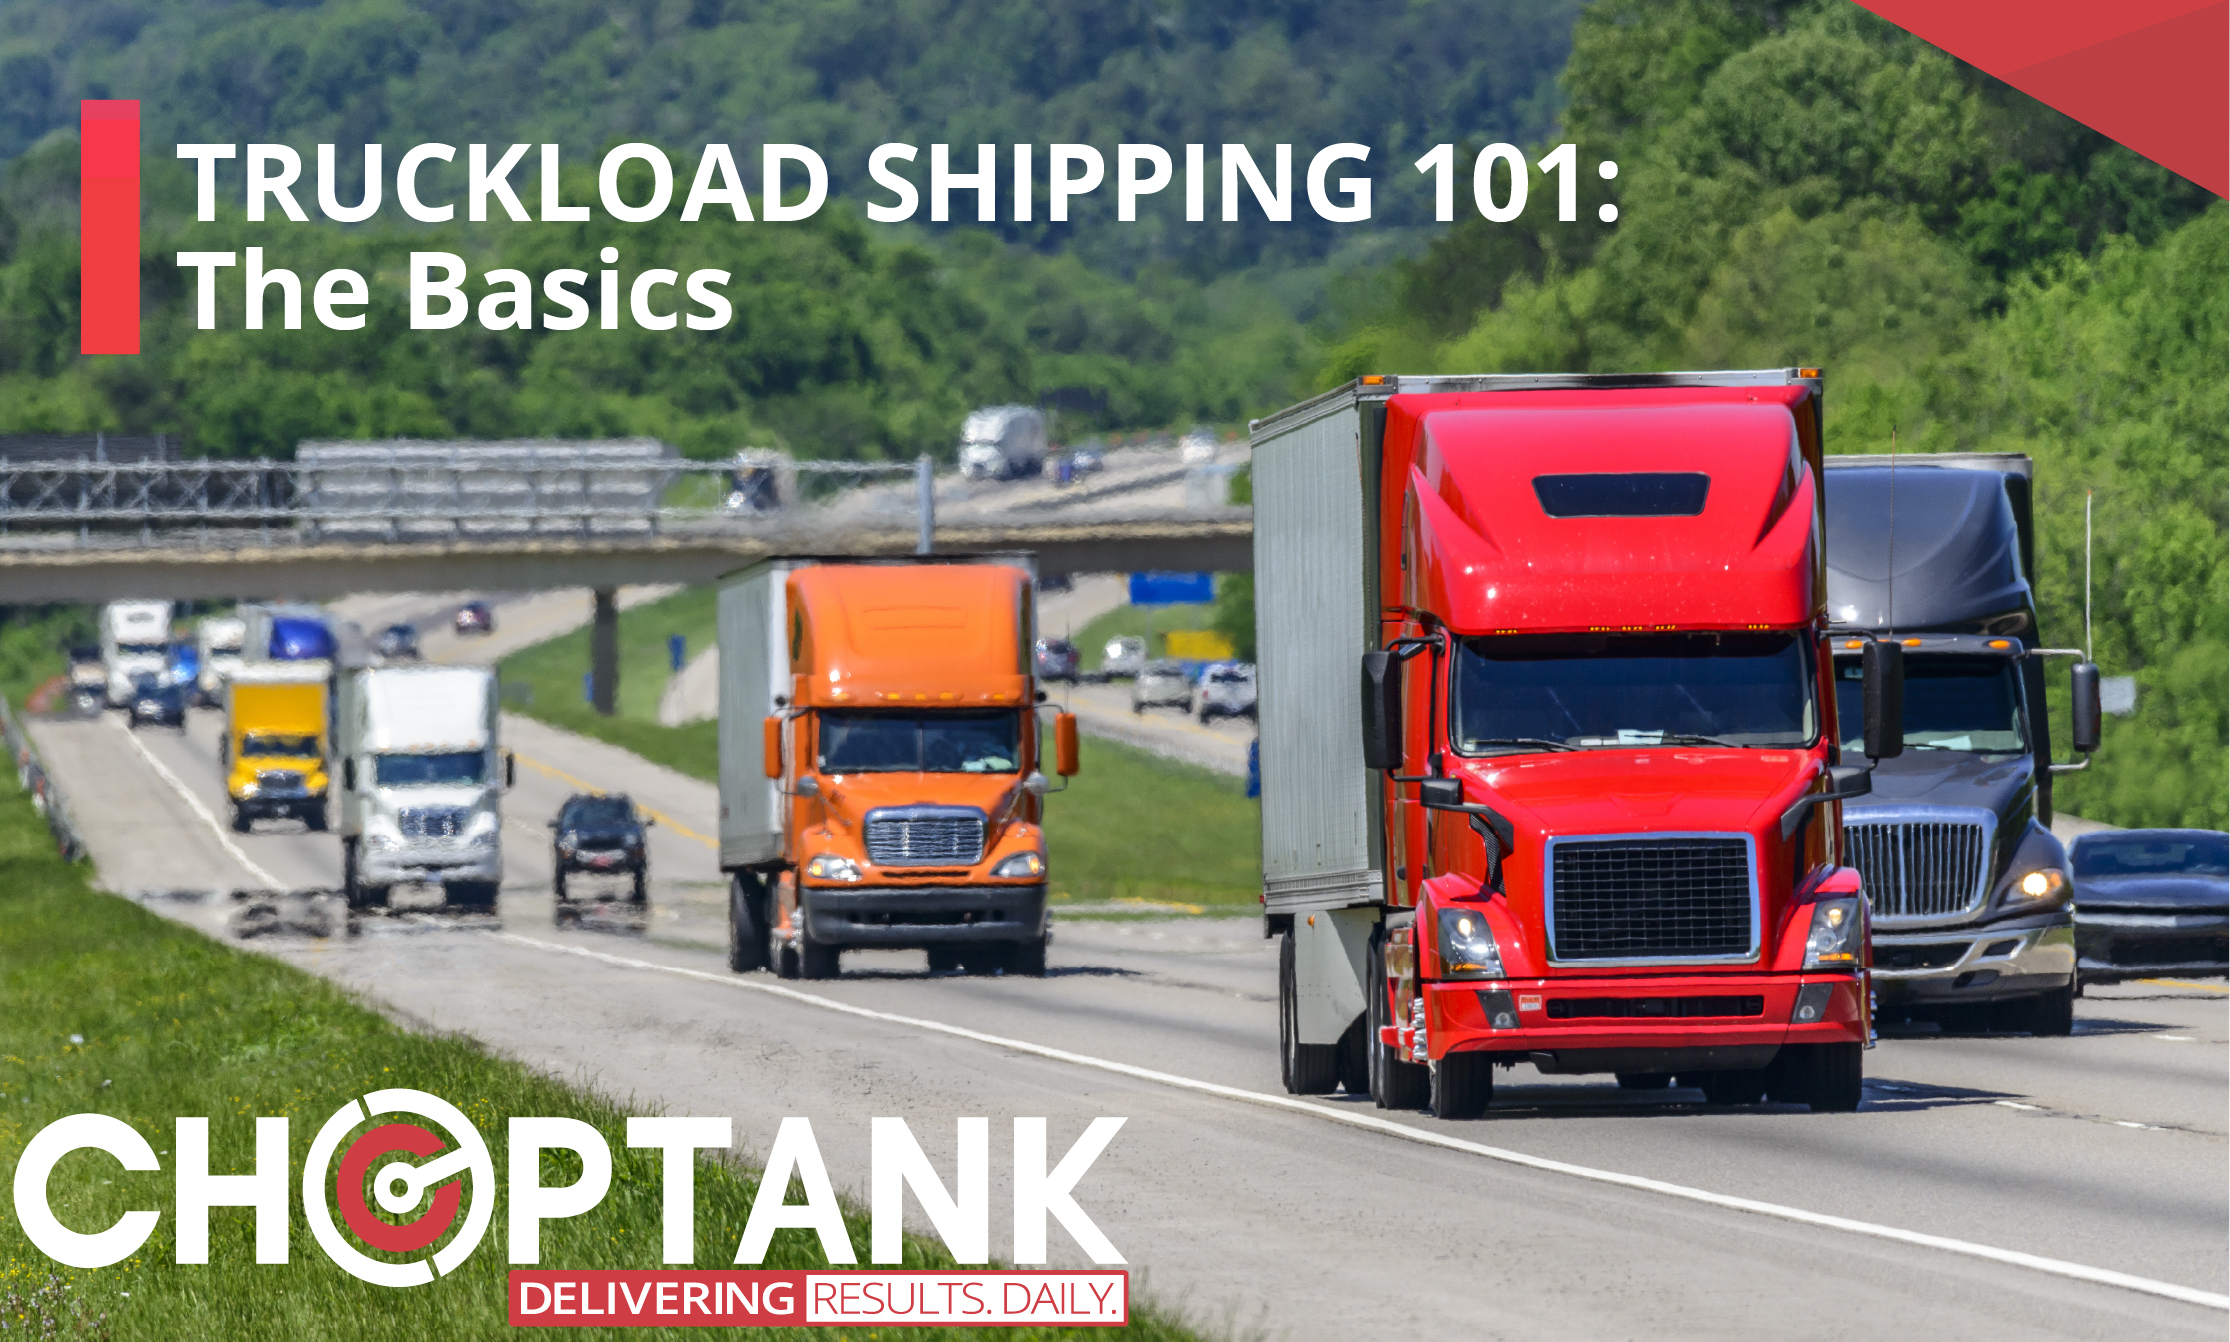 Truckload Shipping 101